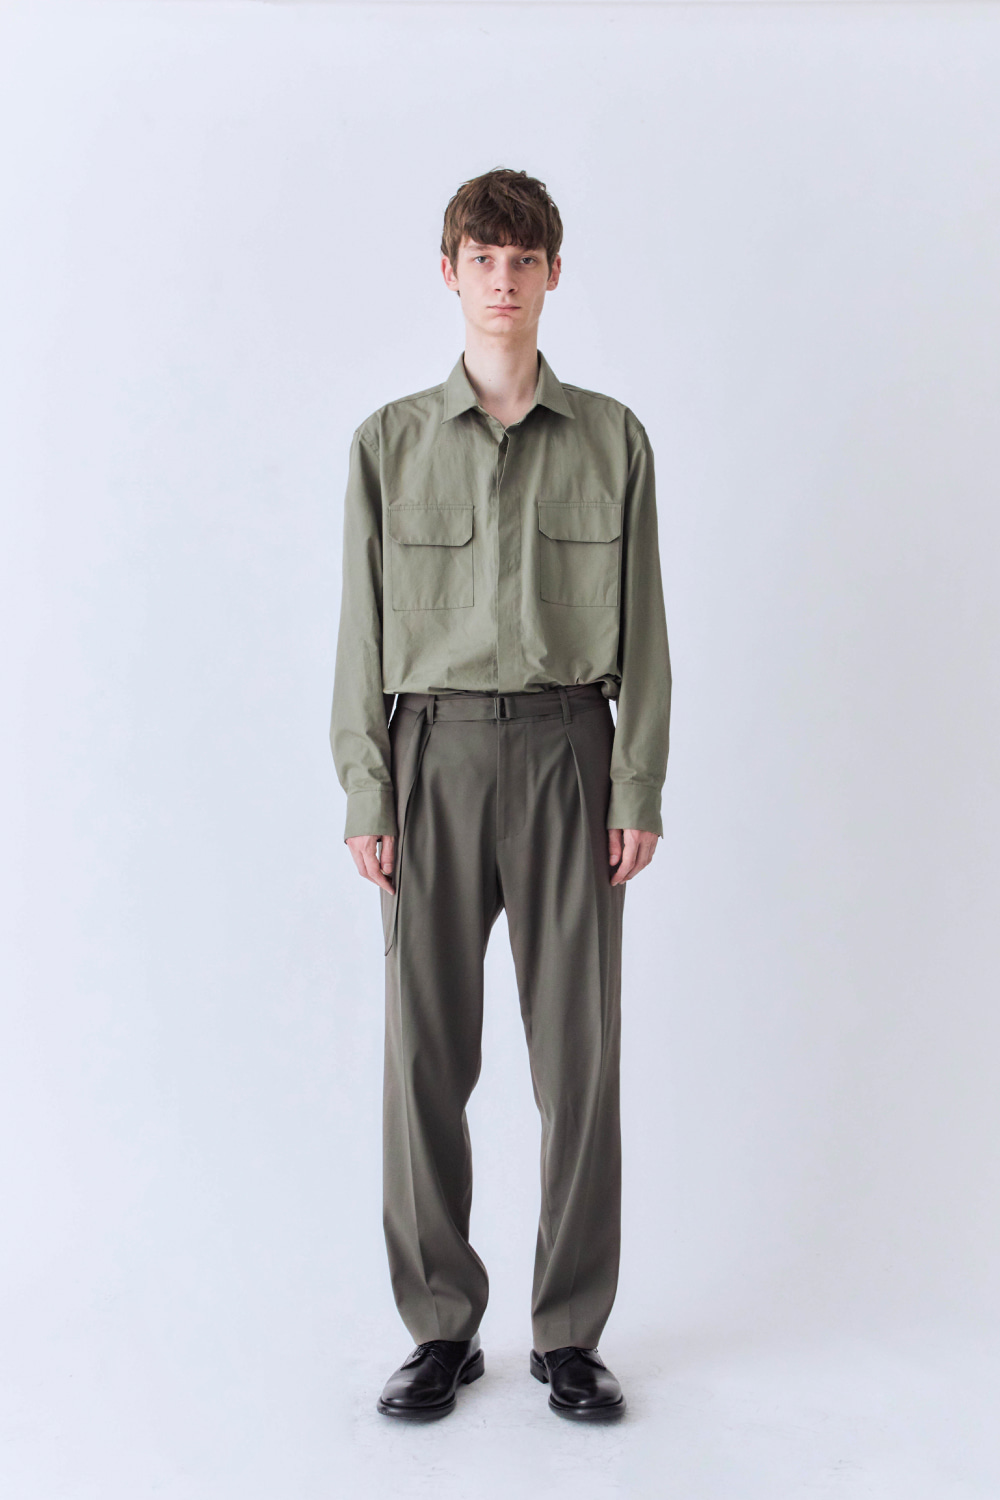 OURSCOPE아워스코프 Hidden Button Shirts (Light Olive)